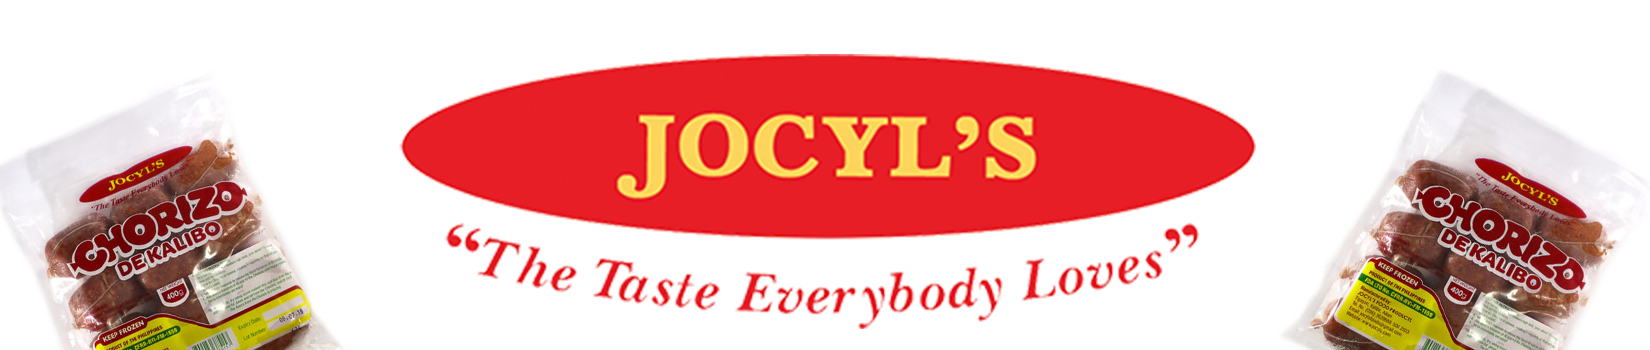 Jocyls Food Products